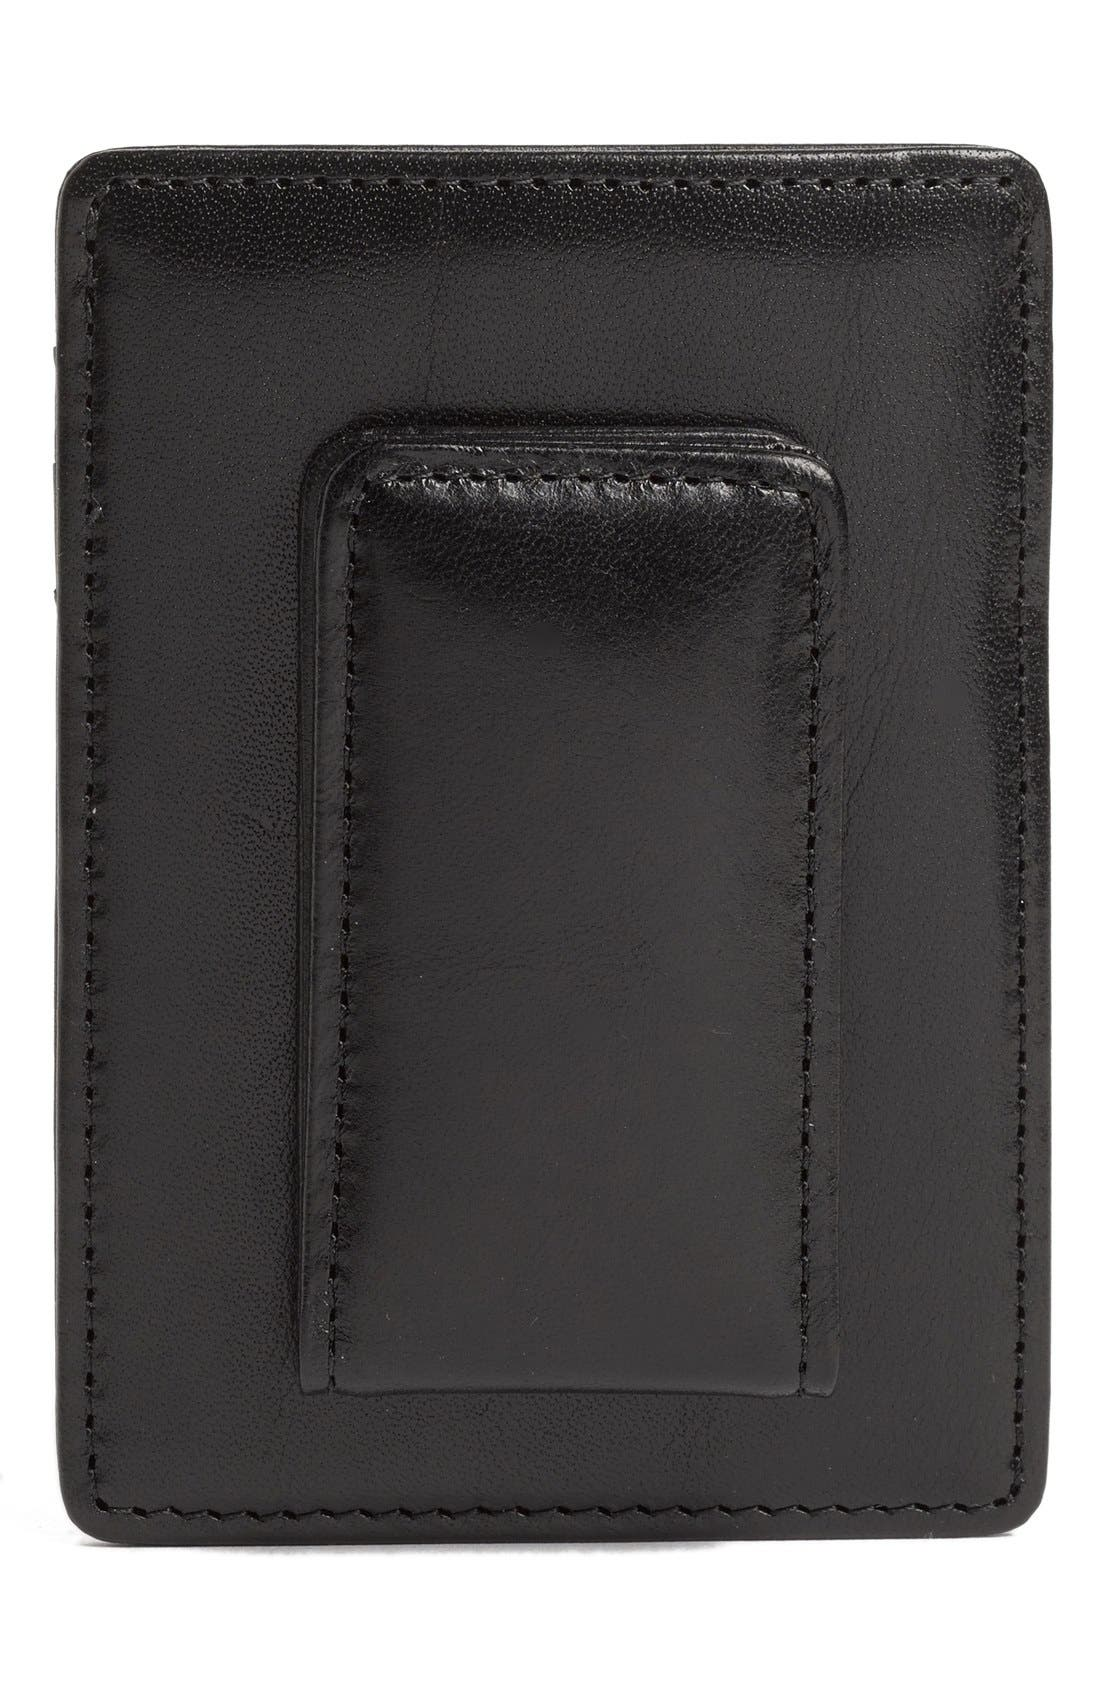 Alternate Image 2  - Bosca 'Old Leather' Front Pocket Wallet